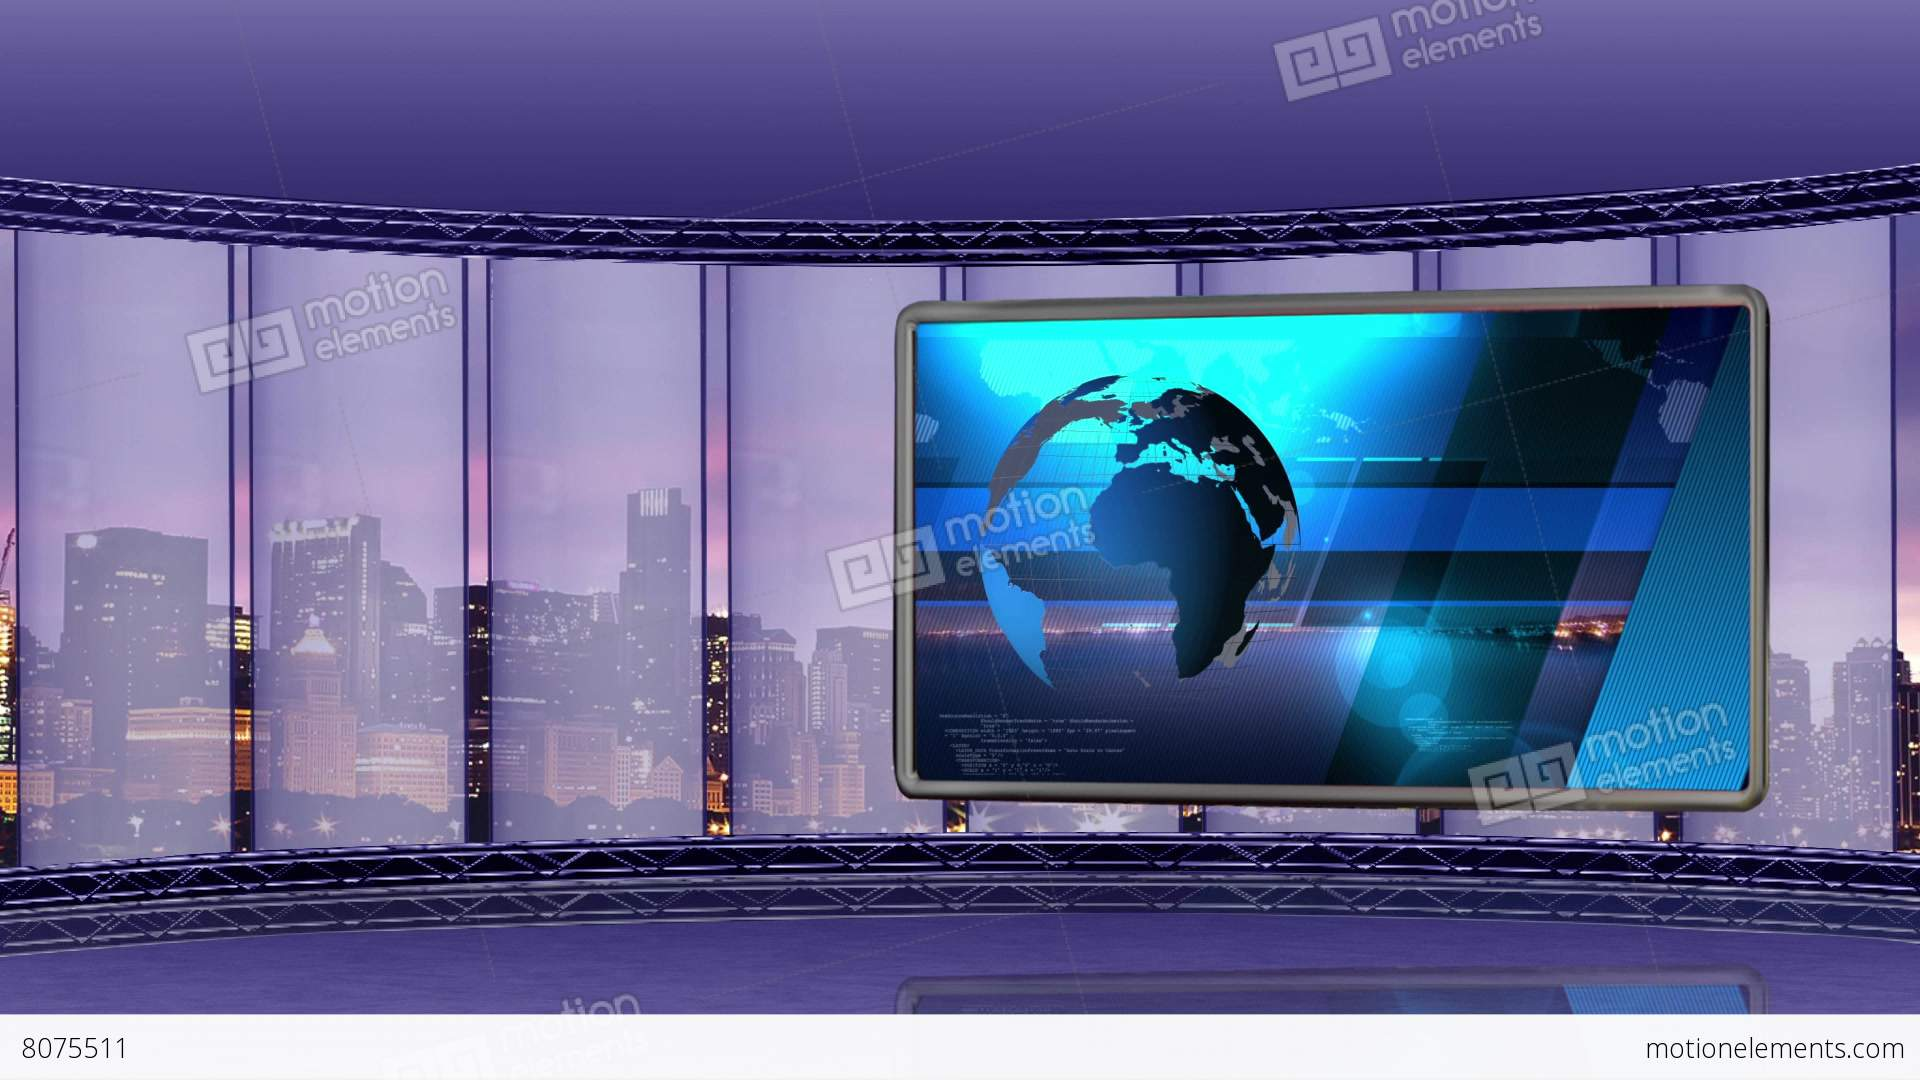 The background of tele education